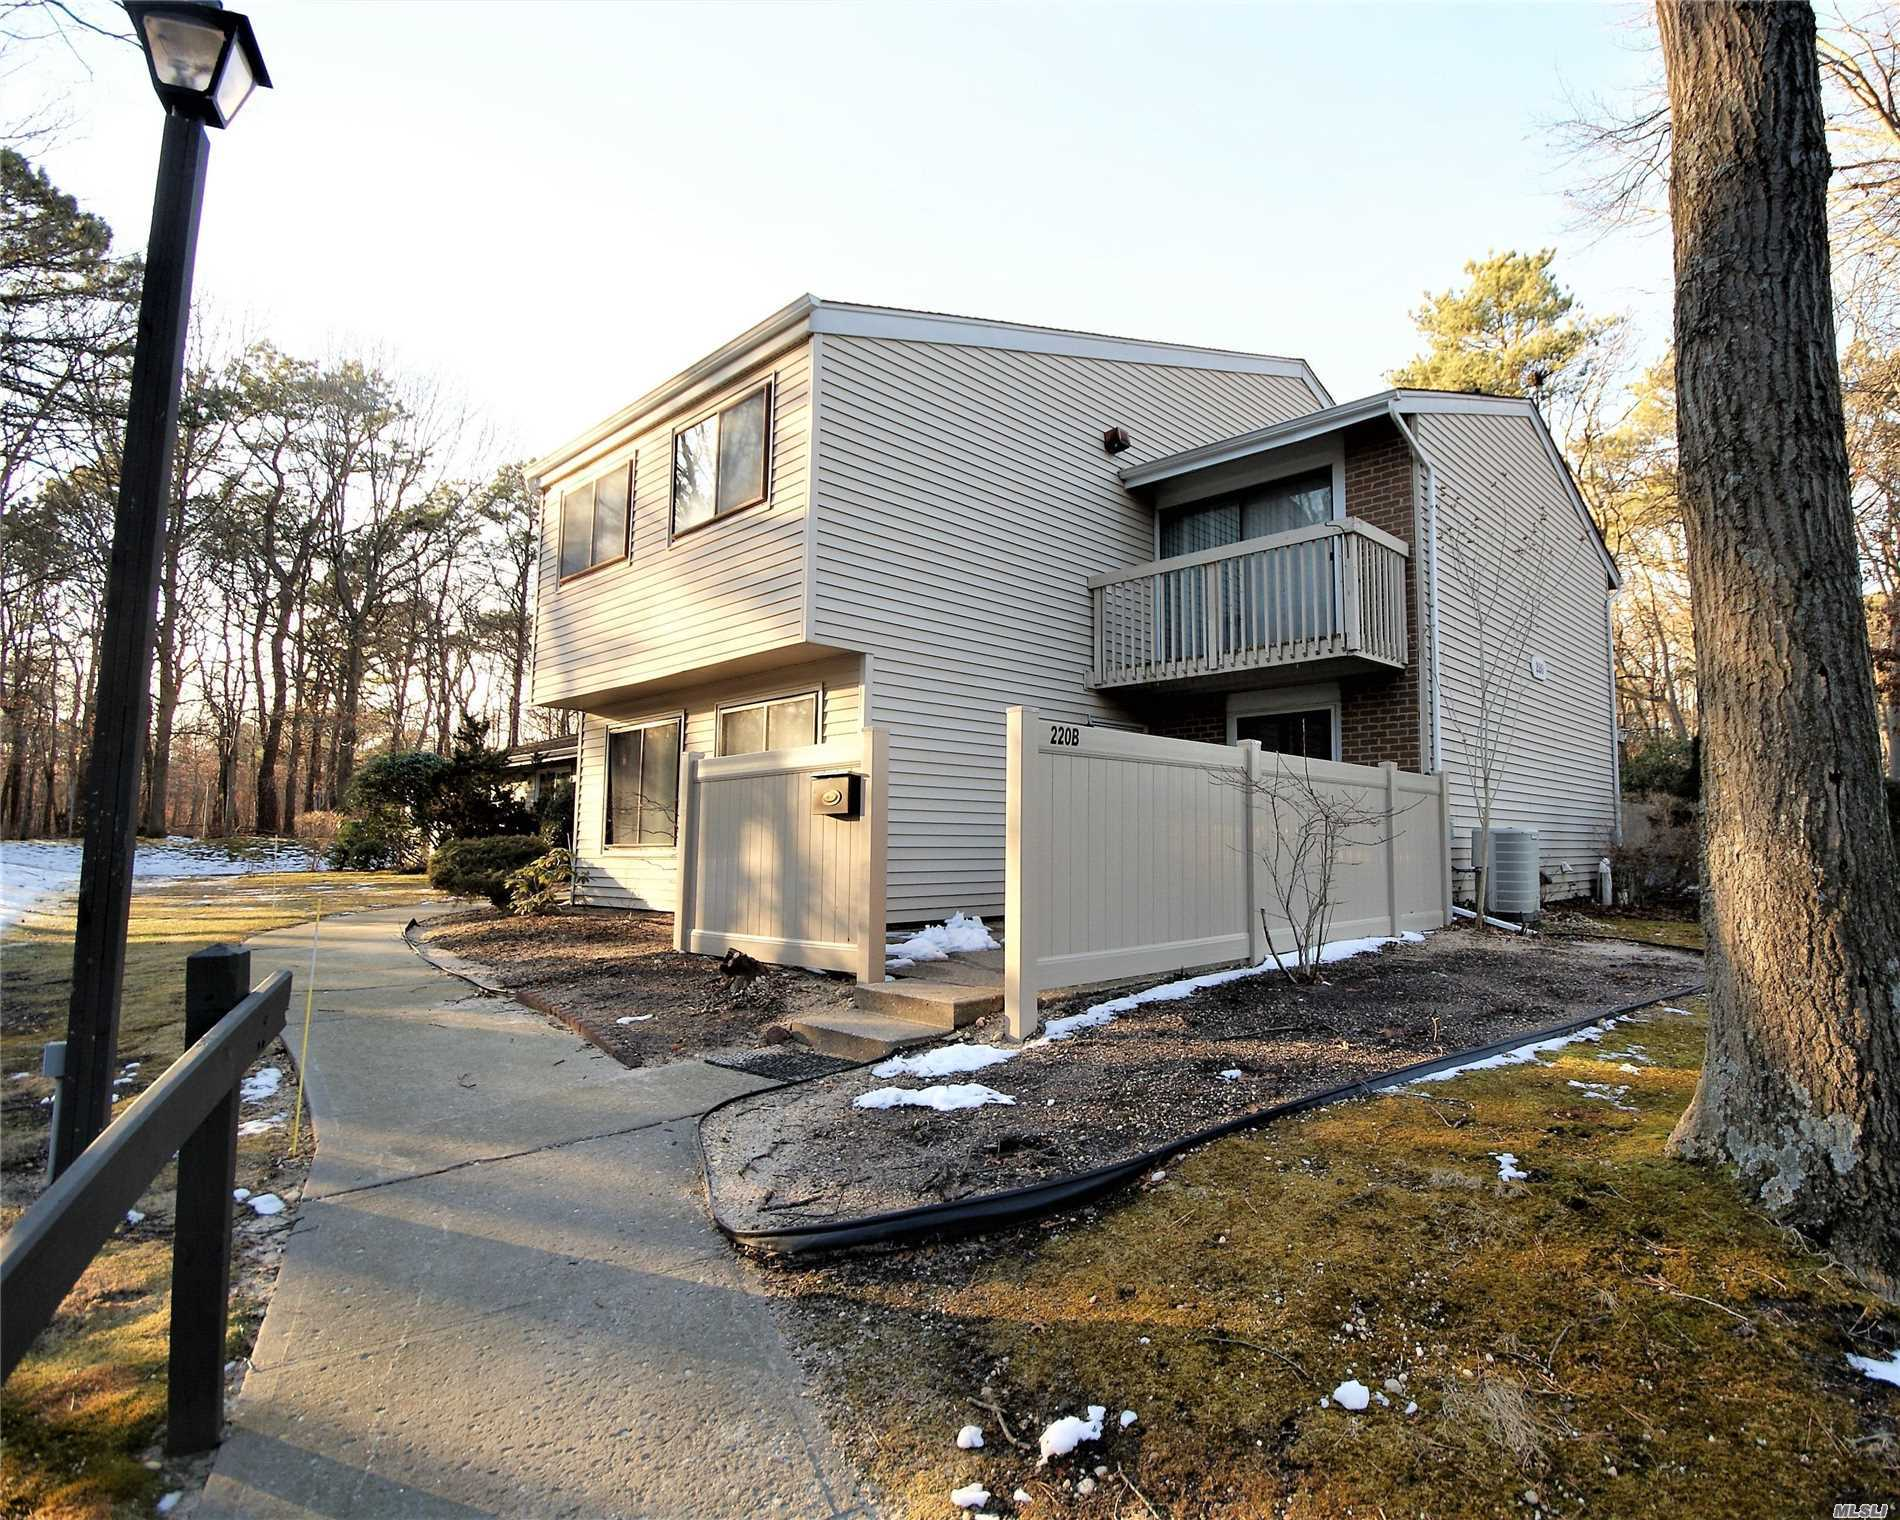 Quiet Private End Unit Located In Middle Of Woodgate Village Overlooking Woods, Next To Golf Course! 3Br Unit - Now 2 Brs. Can Easily Be Convert Back To 3Brs. Private Balcony Off Master Bedroom, Updated Bathroom, Wood Floor 2nd. Bedroom, Kitchen With Updated Counters, Cabinets & Floor. Close To Long Island Railroad, Islip Airport, Downtown Patchogue & 15 Minutes From Stony Brook University/Hospital.